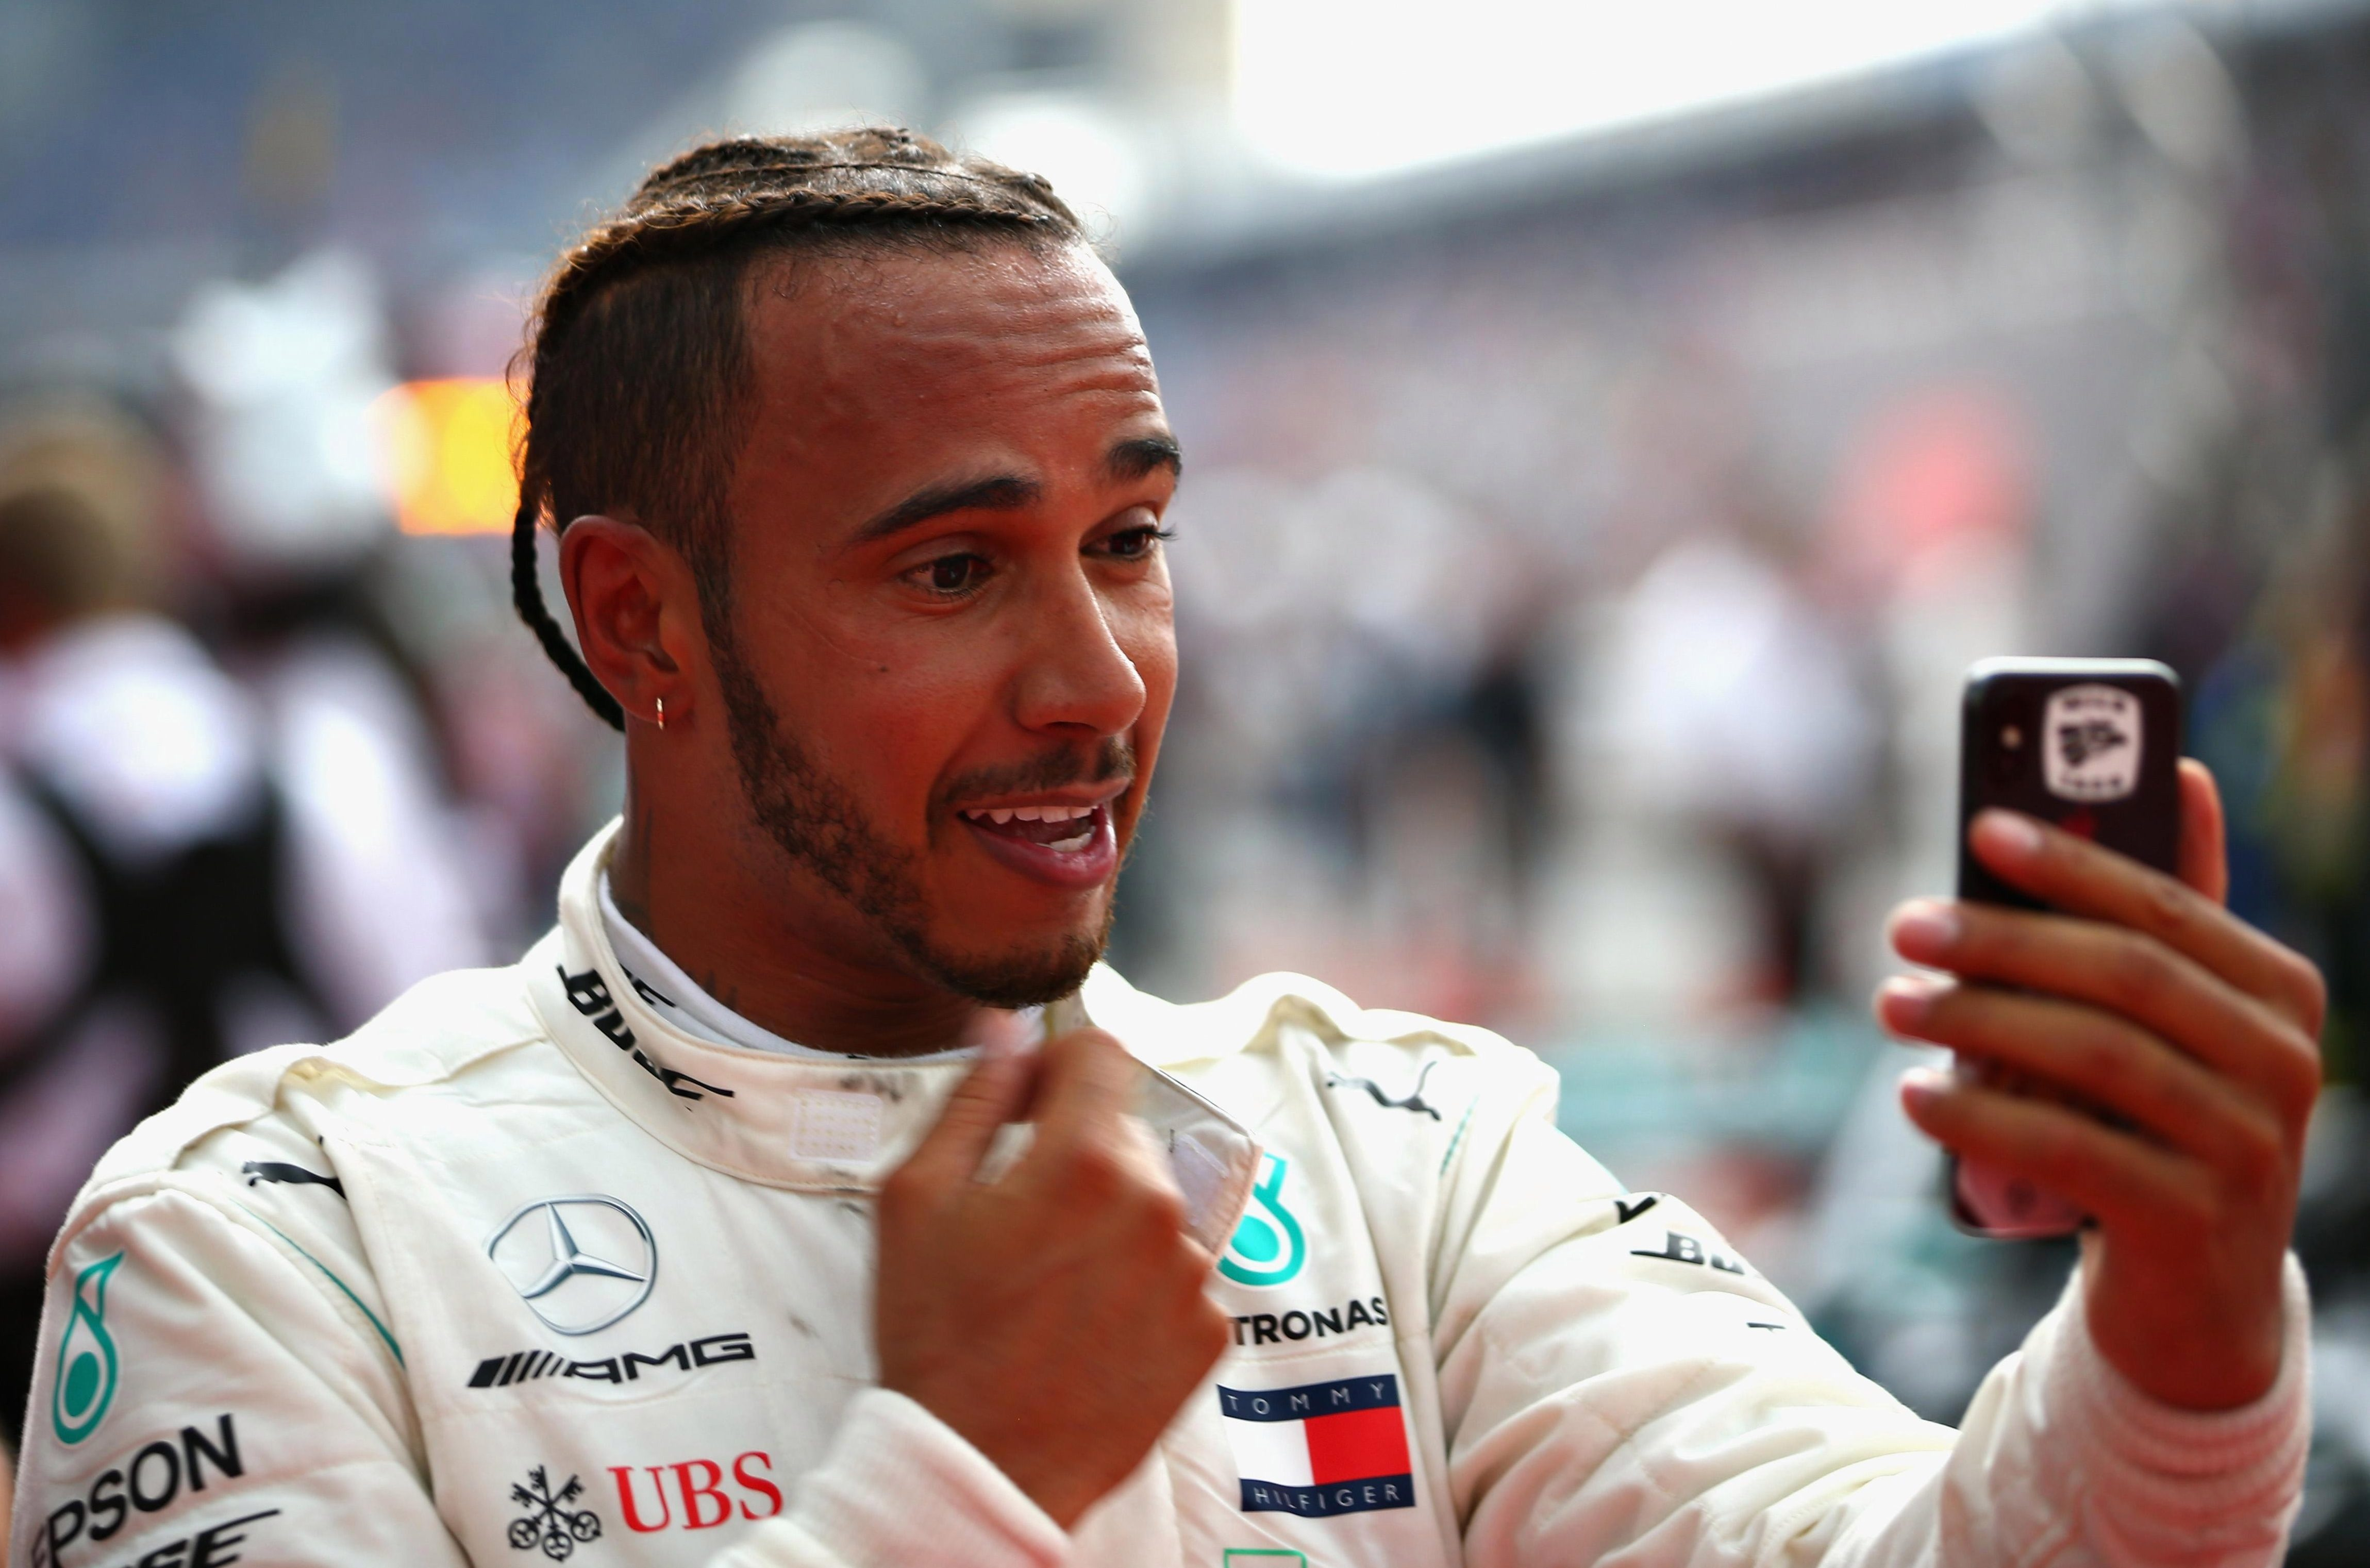 Lewis Hamilton has been given the green light to keep on with his social media rants